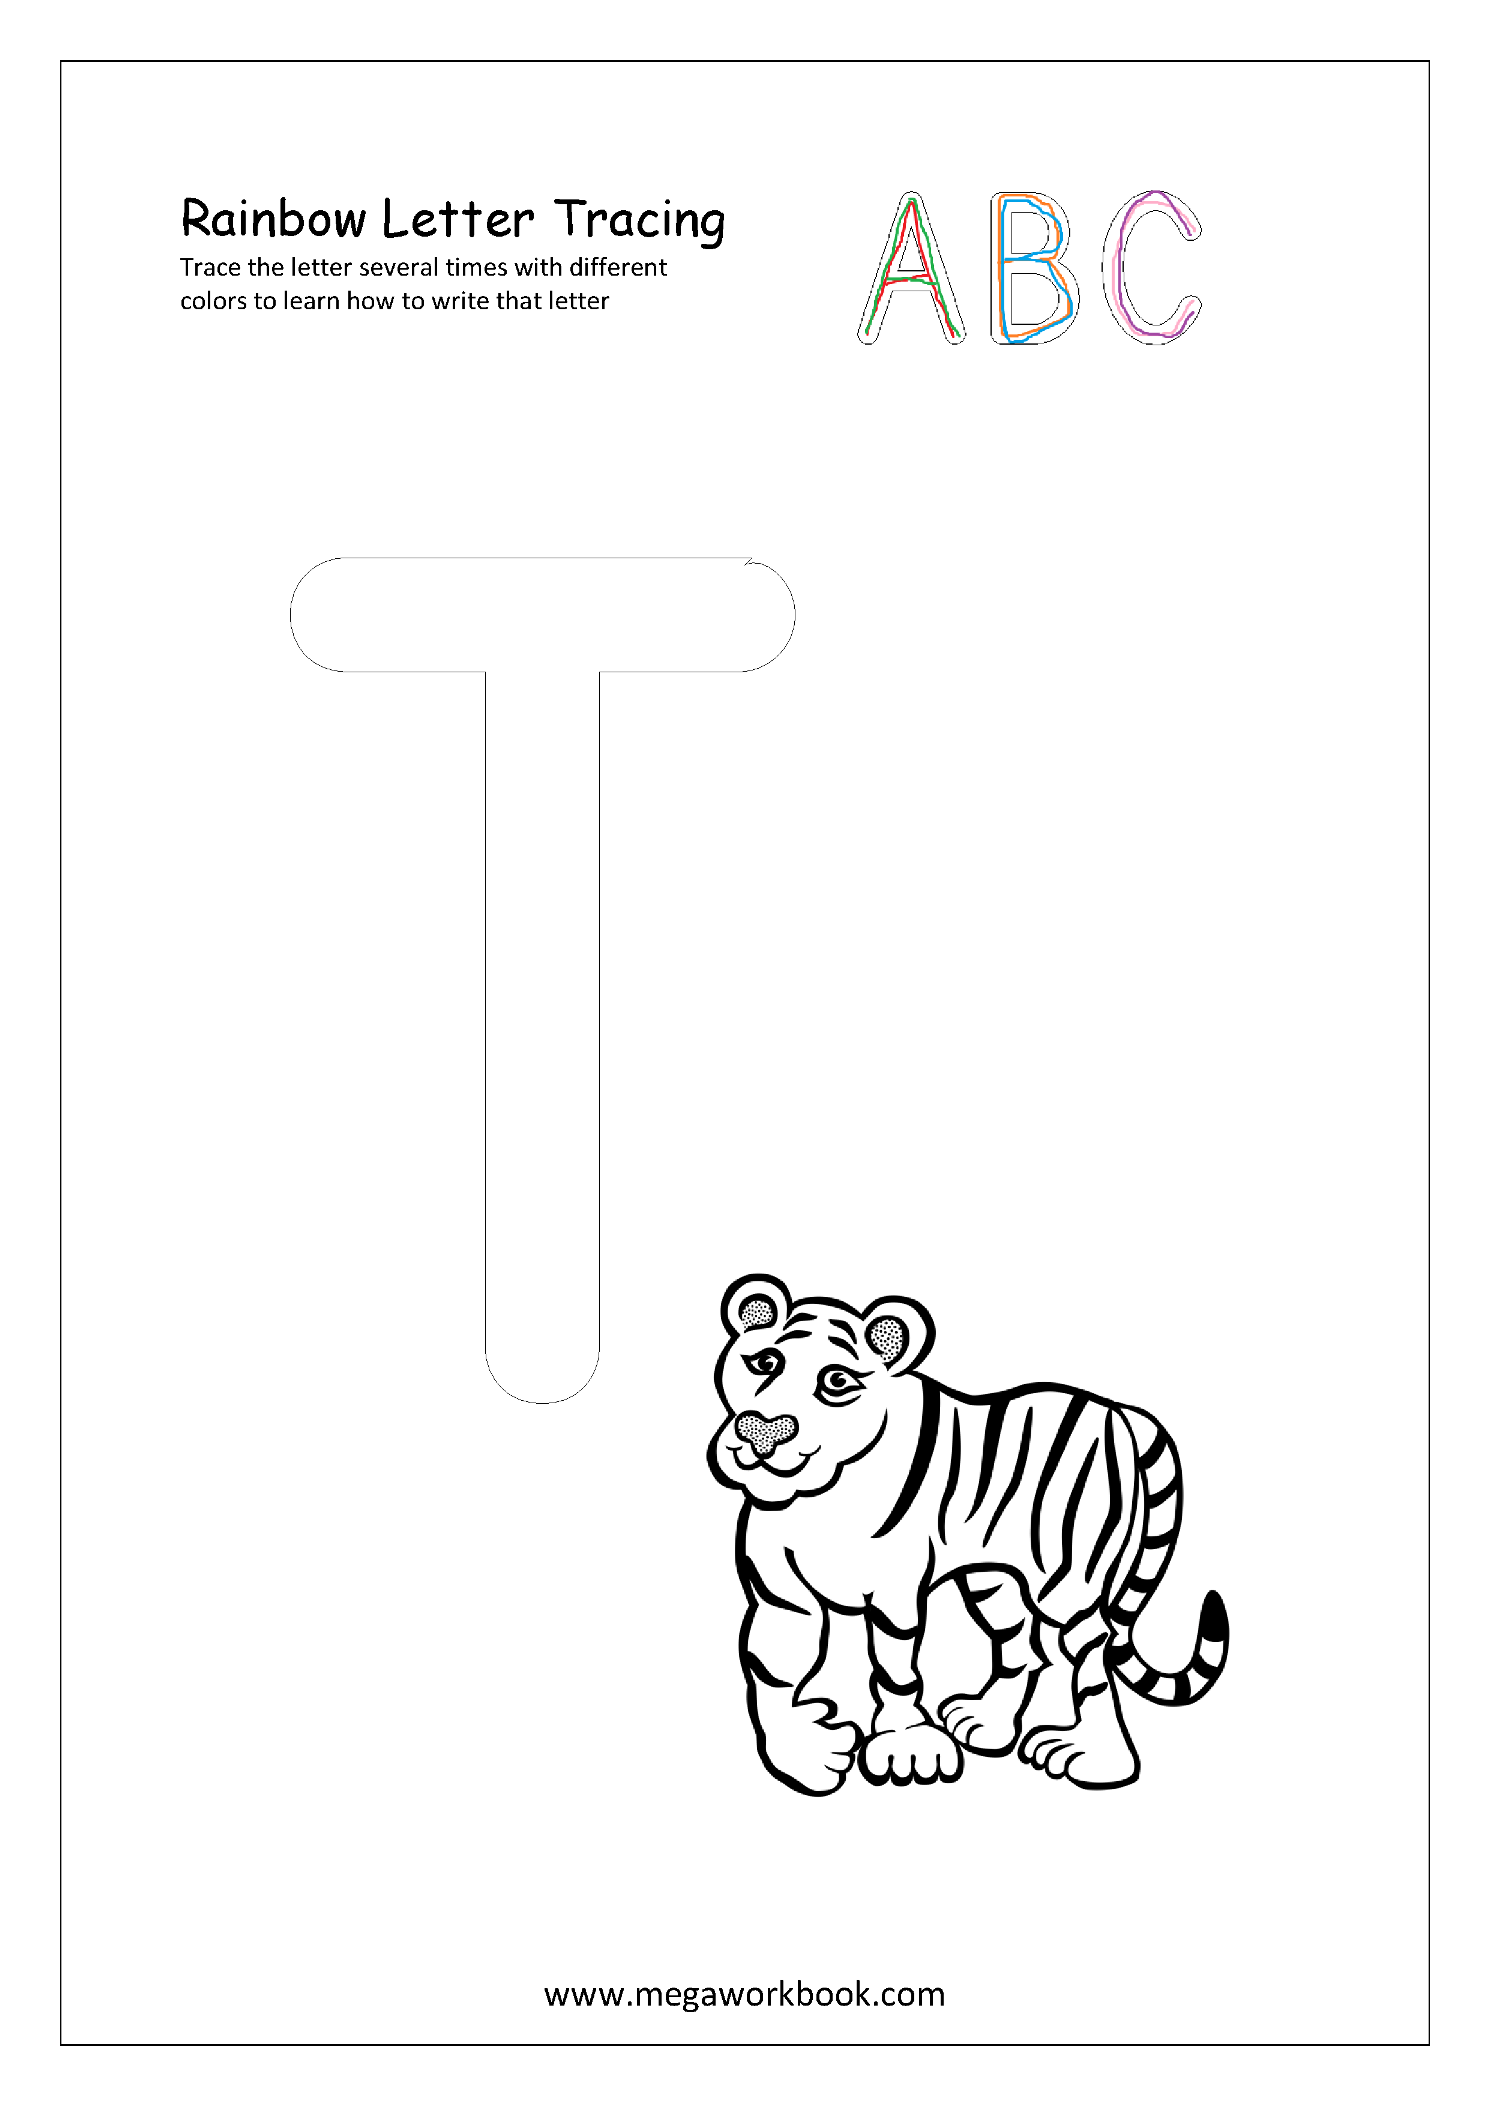 Rainbow Letter Tracing For Capital Letters - Alphabet